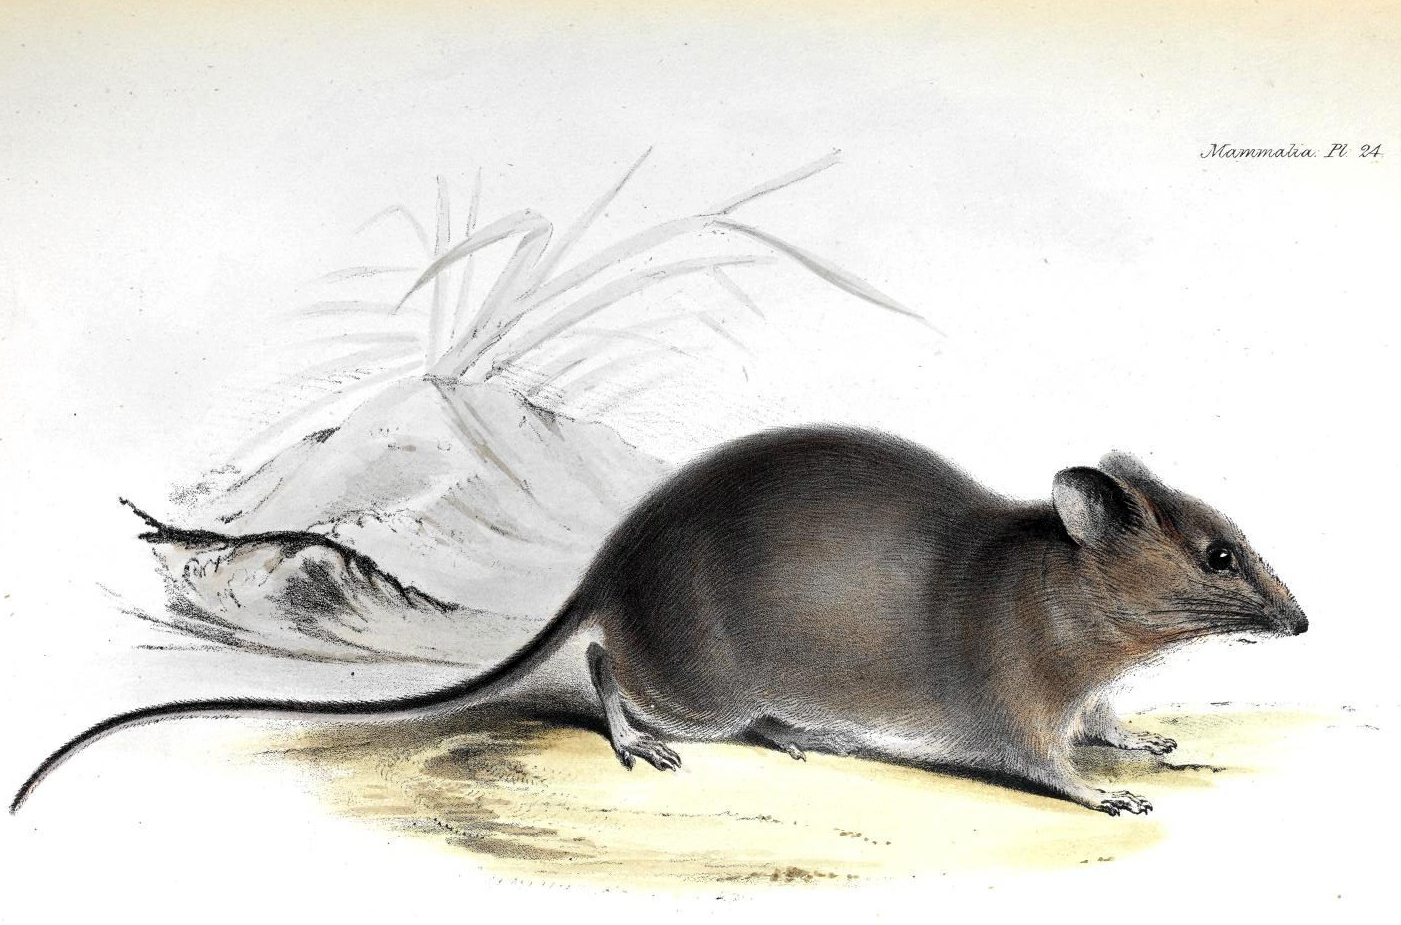 File:Galapagos Rice-Rat.jpg